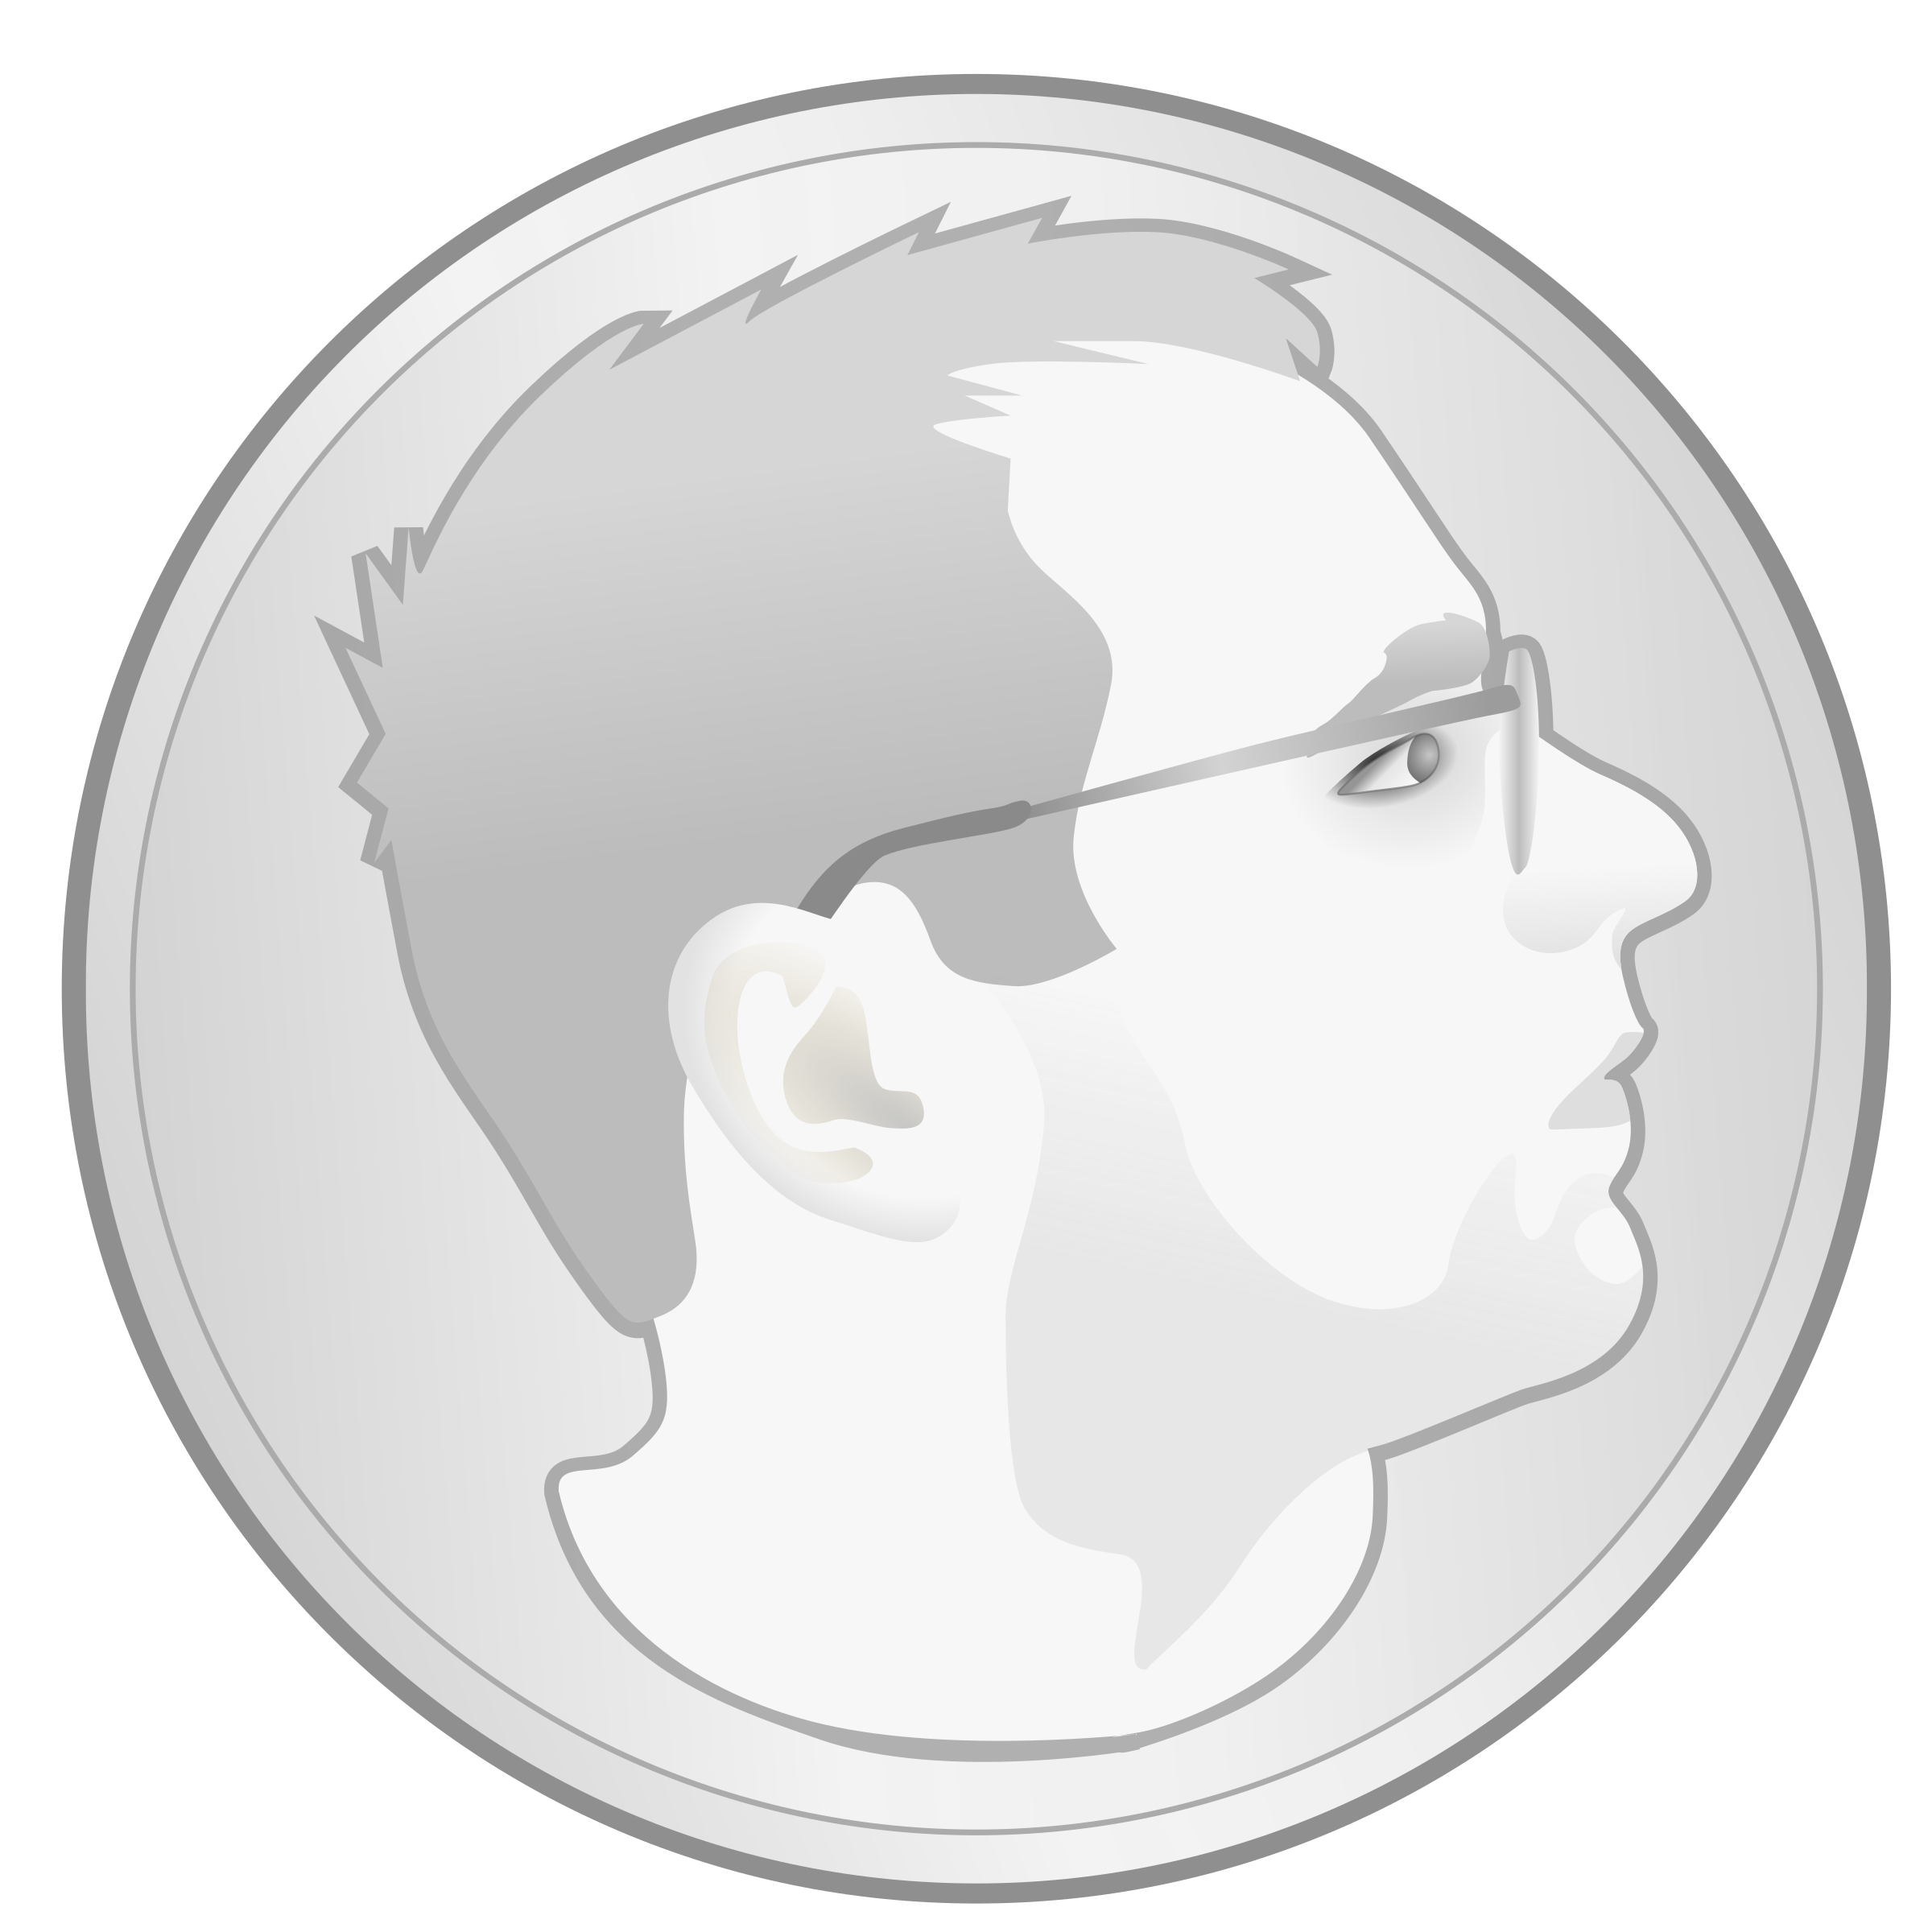 Me as a Coin by Simanek